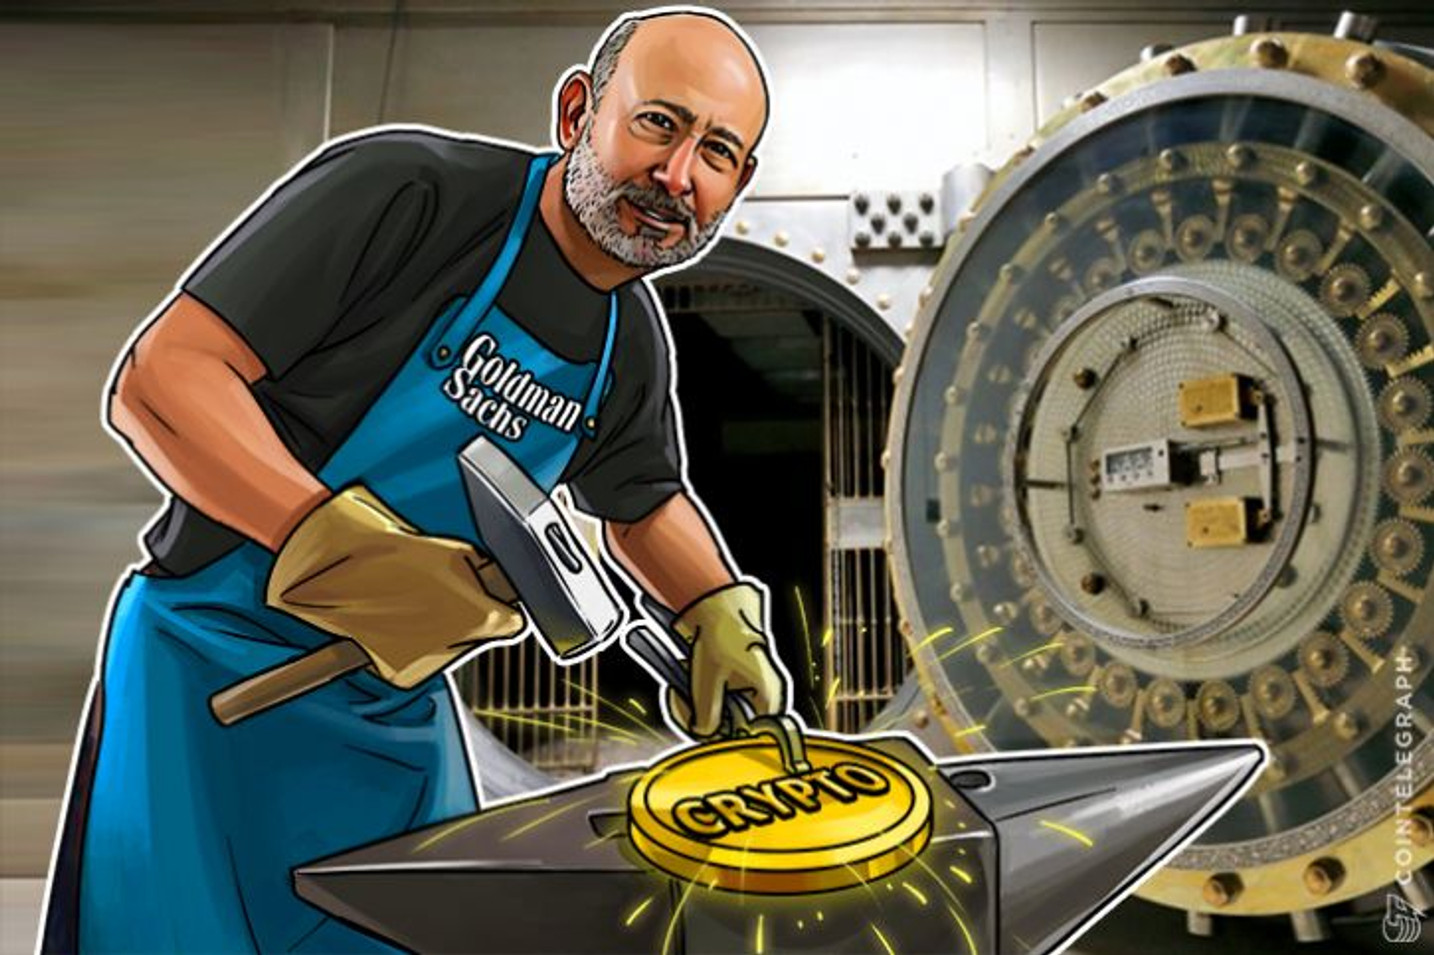 WSJ: Goldman Sachs Planning Direct Bitcoin Trading